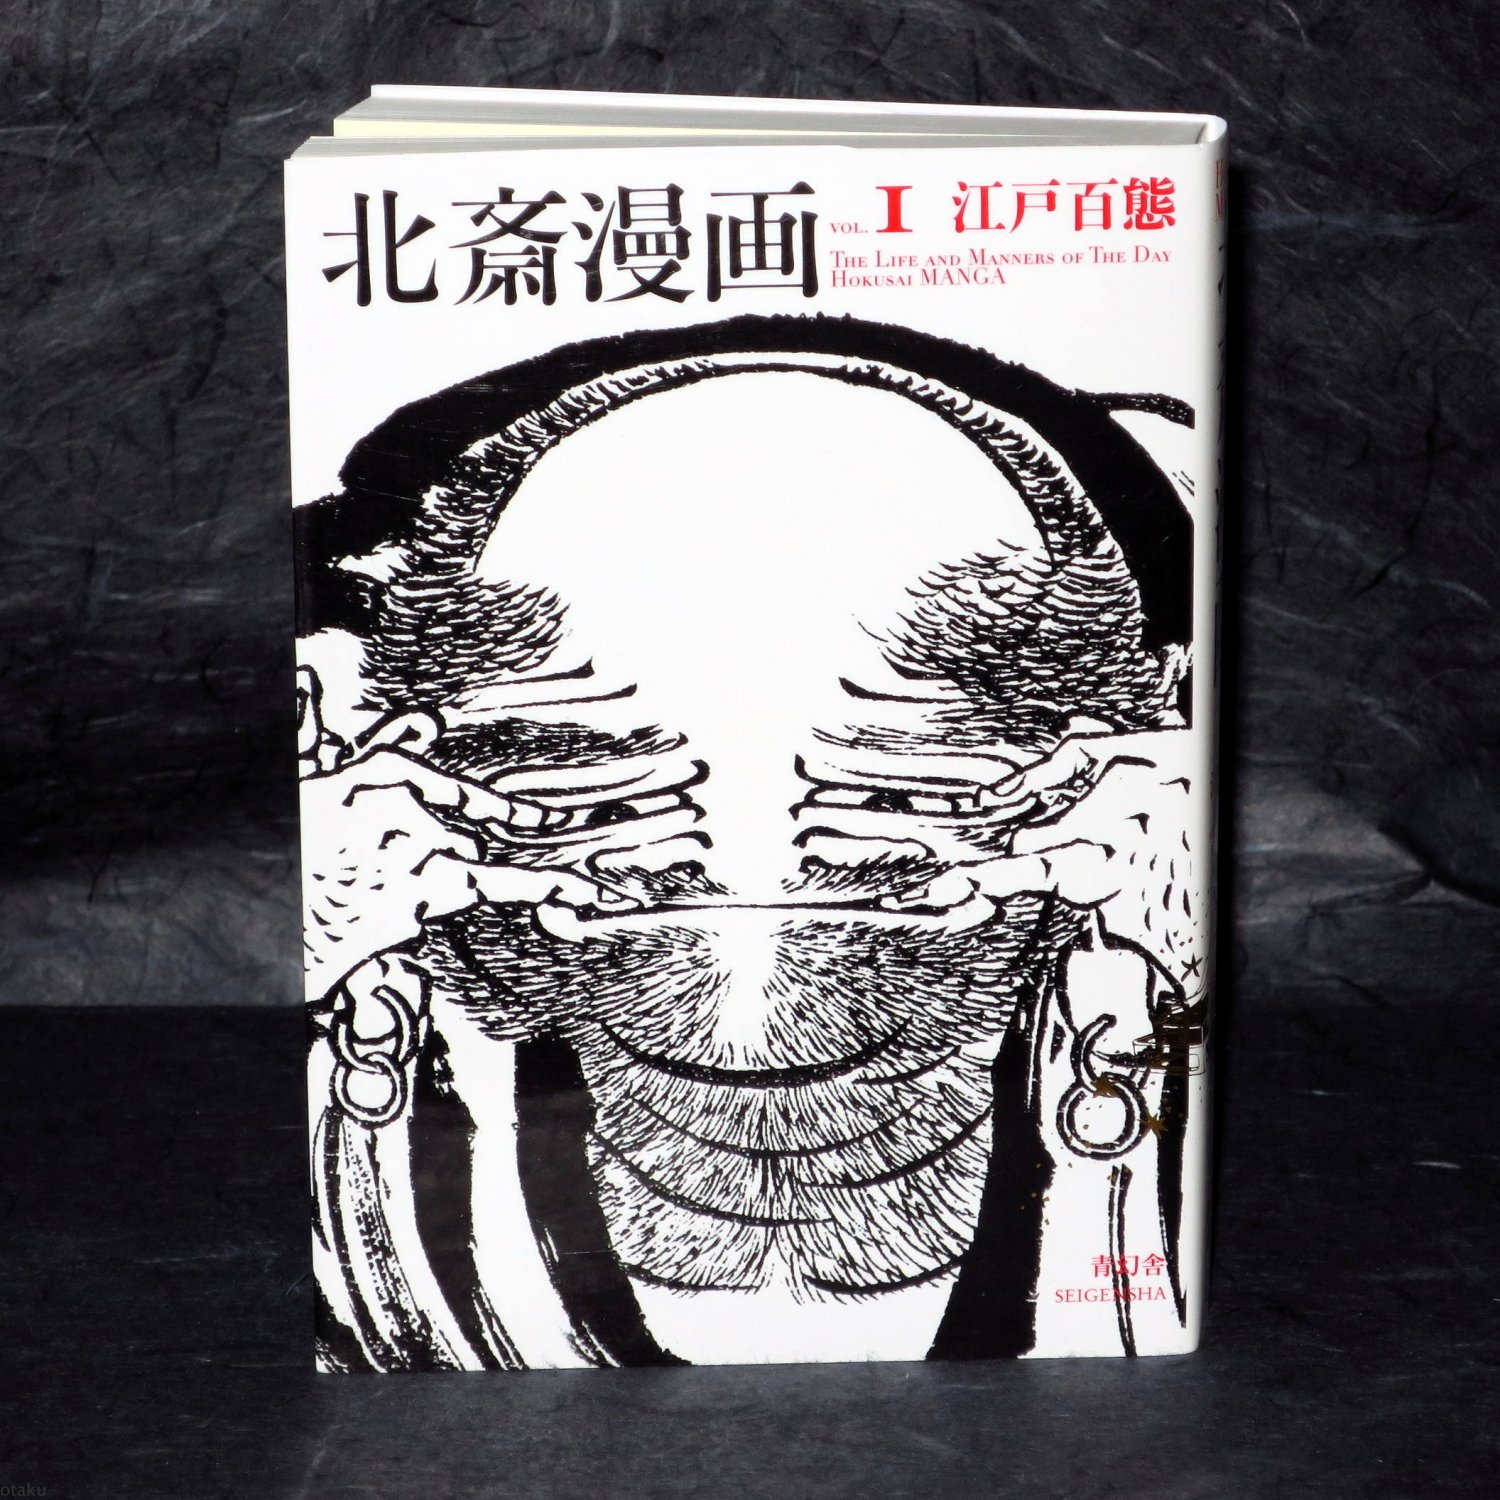 Hokusai Manga Vol 1 The Life and Manners of the Day Japan Art Book NEW